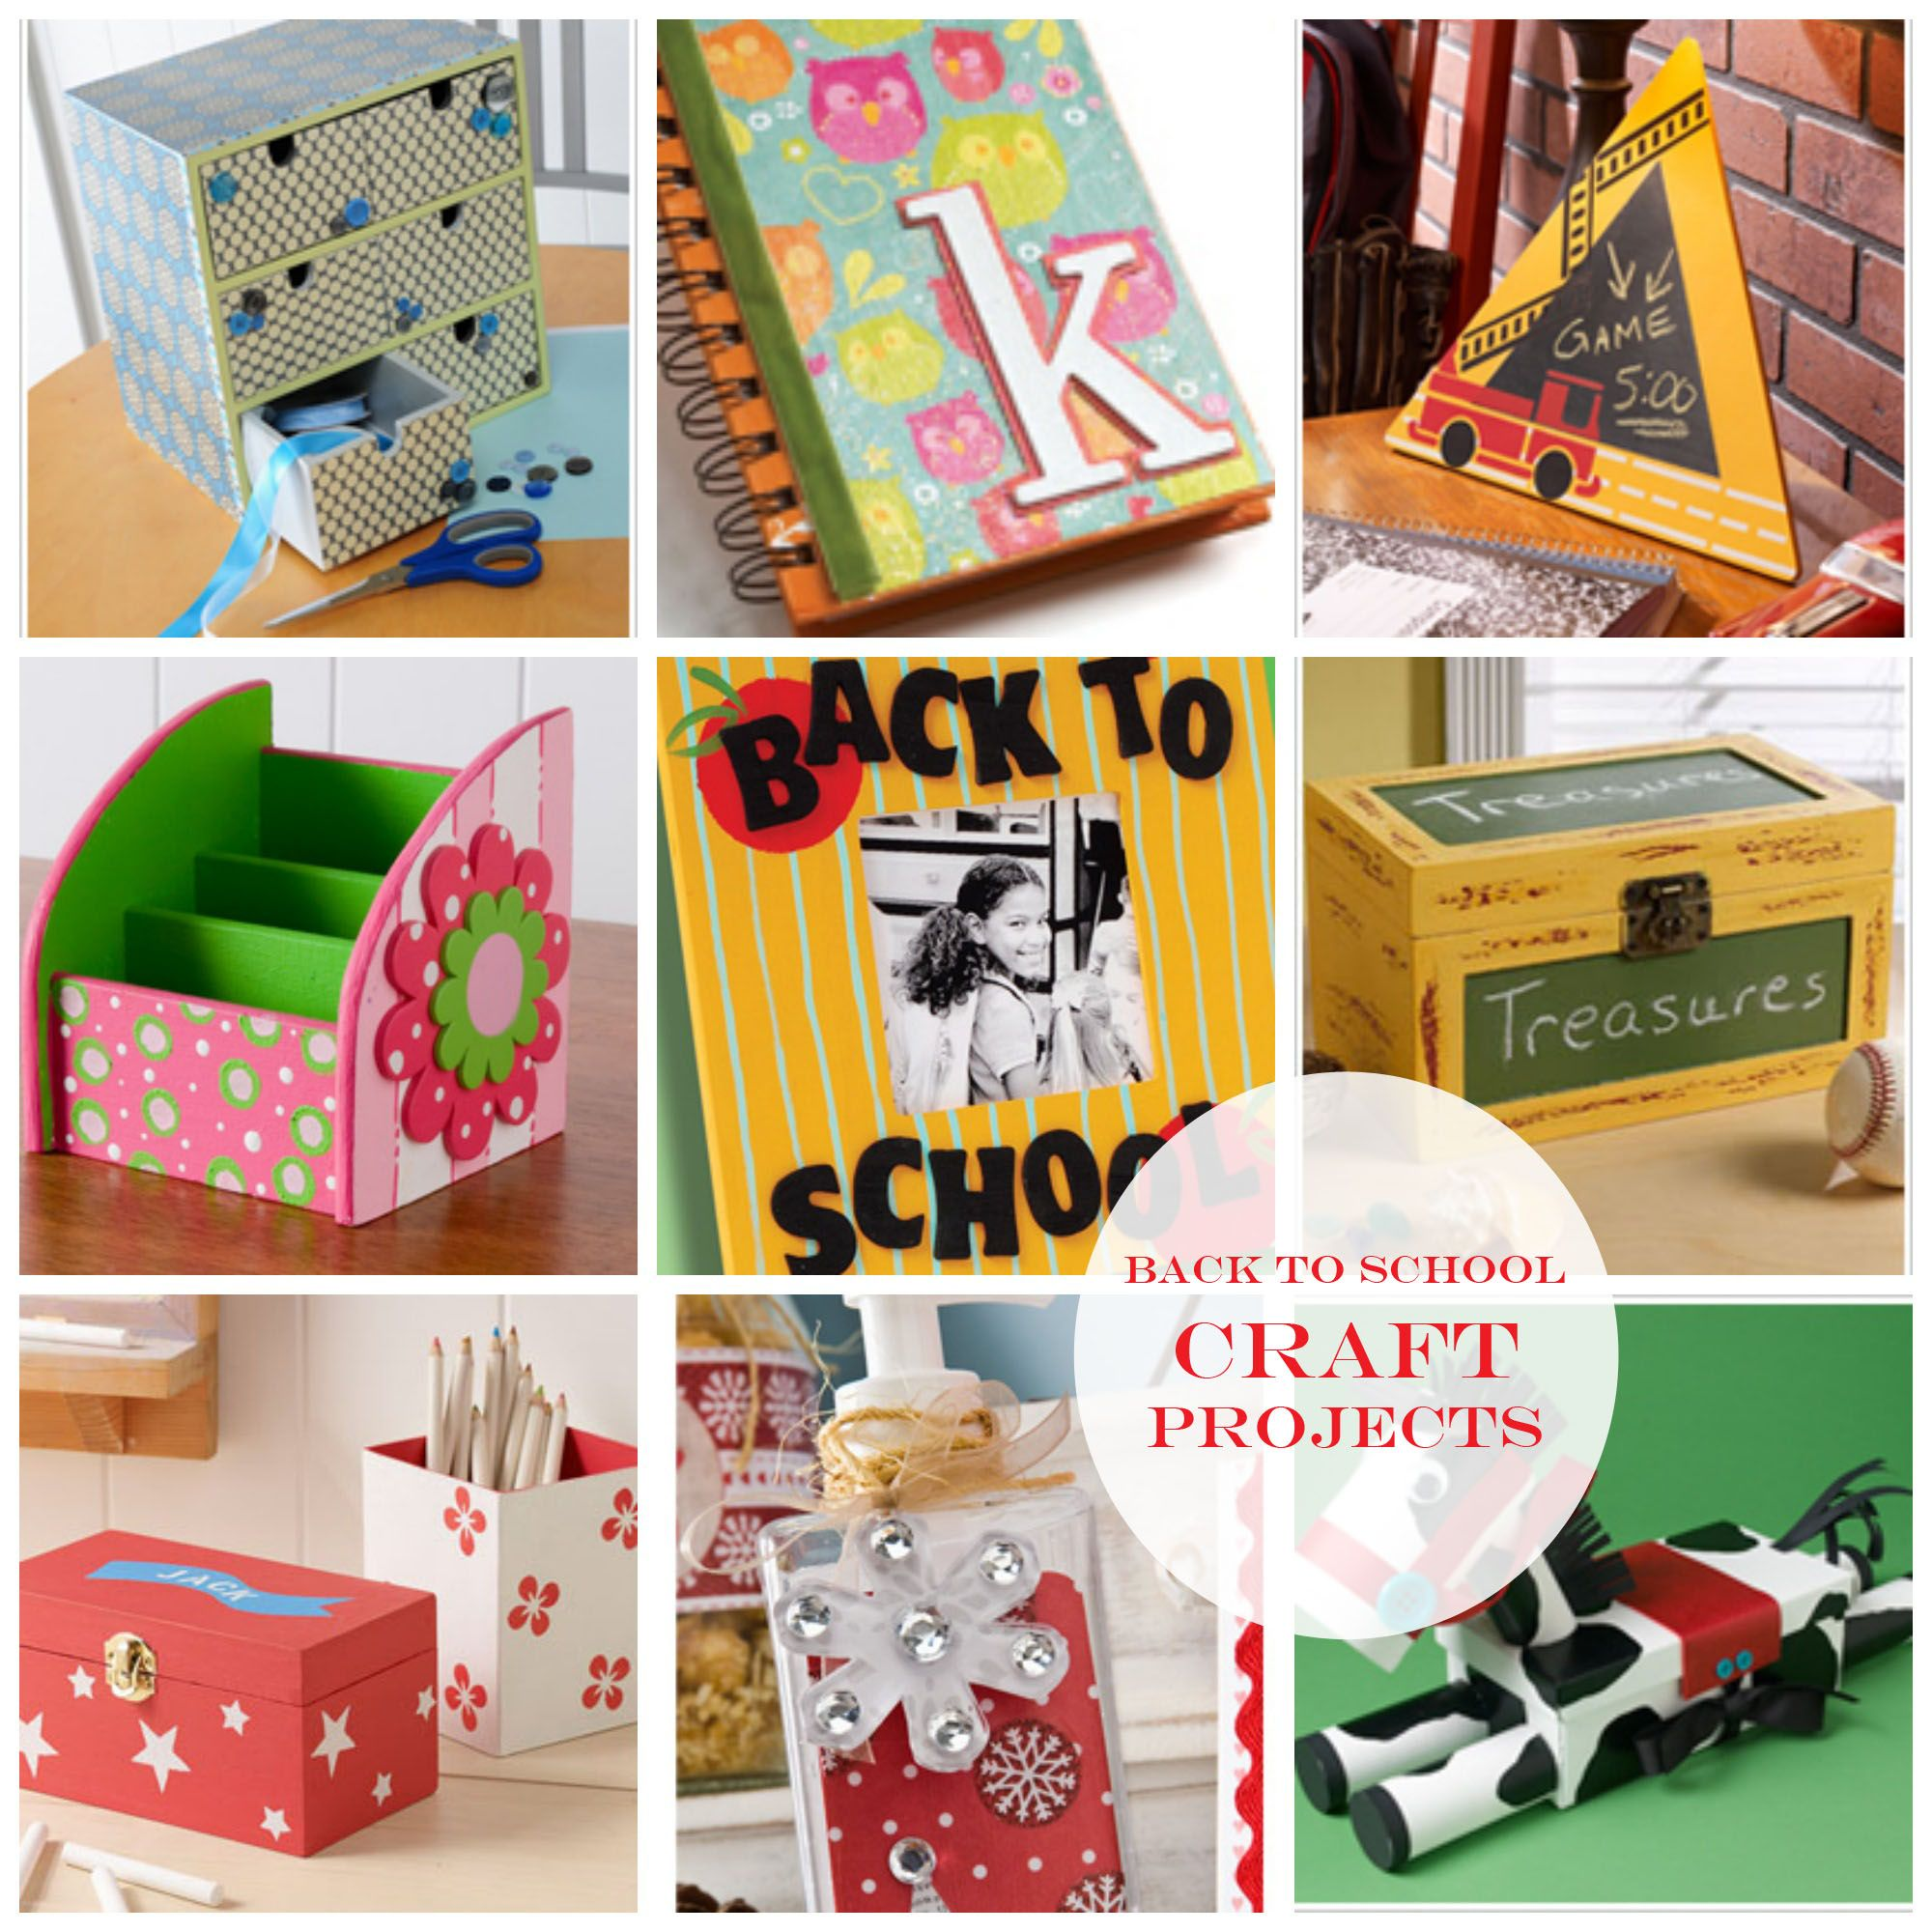 Crafting Search Results Plaid Enterprises Diy Crafts For School Craft Projects School Crafts